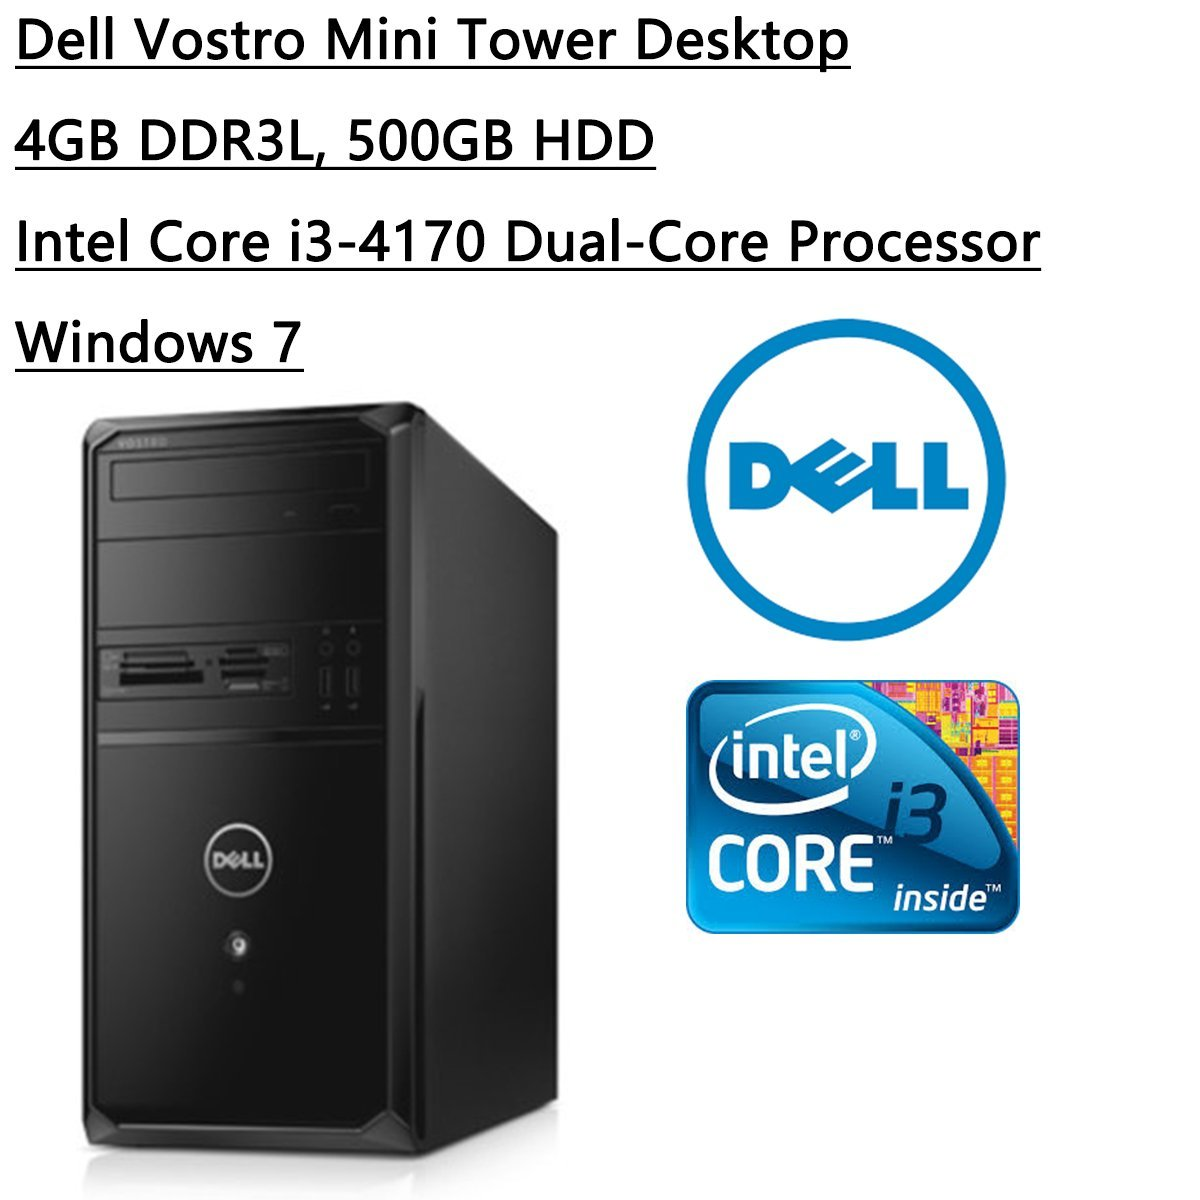 Newest Dell Flagship 2016 Vostro Mini Tower Desktop Intel Core i3-4170 Processor (3M Cache, 3.70 GHz) 500GB 7200 RPM SATA 6Gb/s Hard Drive, 4GB DDR3L, HDMI, Windows 7 Professional, Black